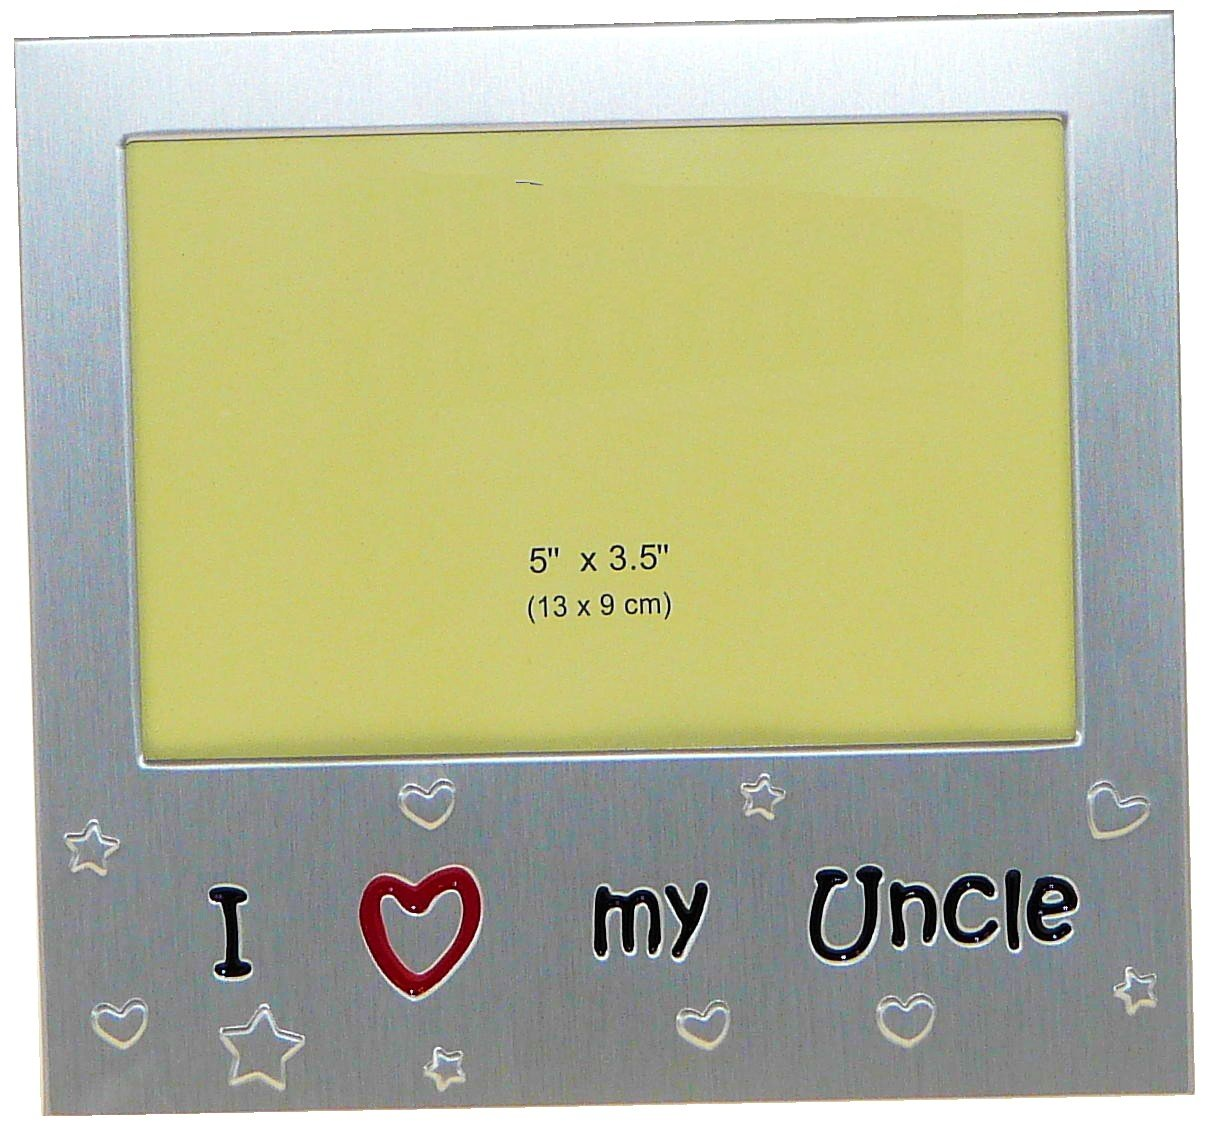 i love my uncle photo picture frame gift 5 x 35